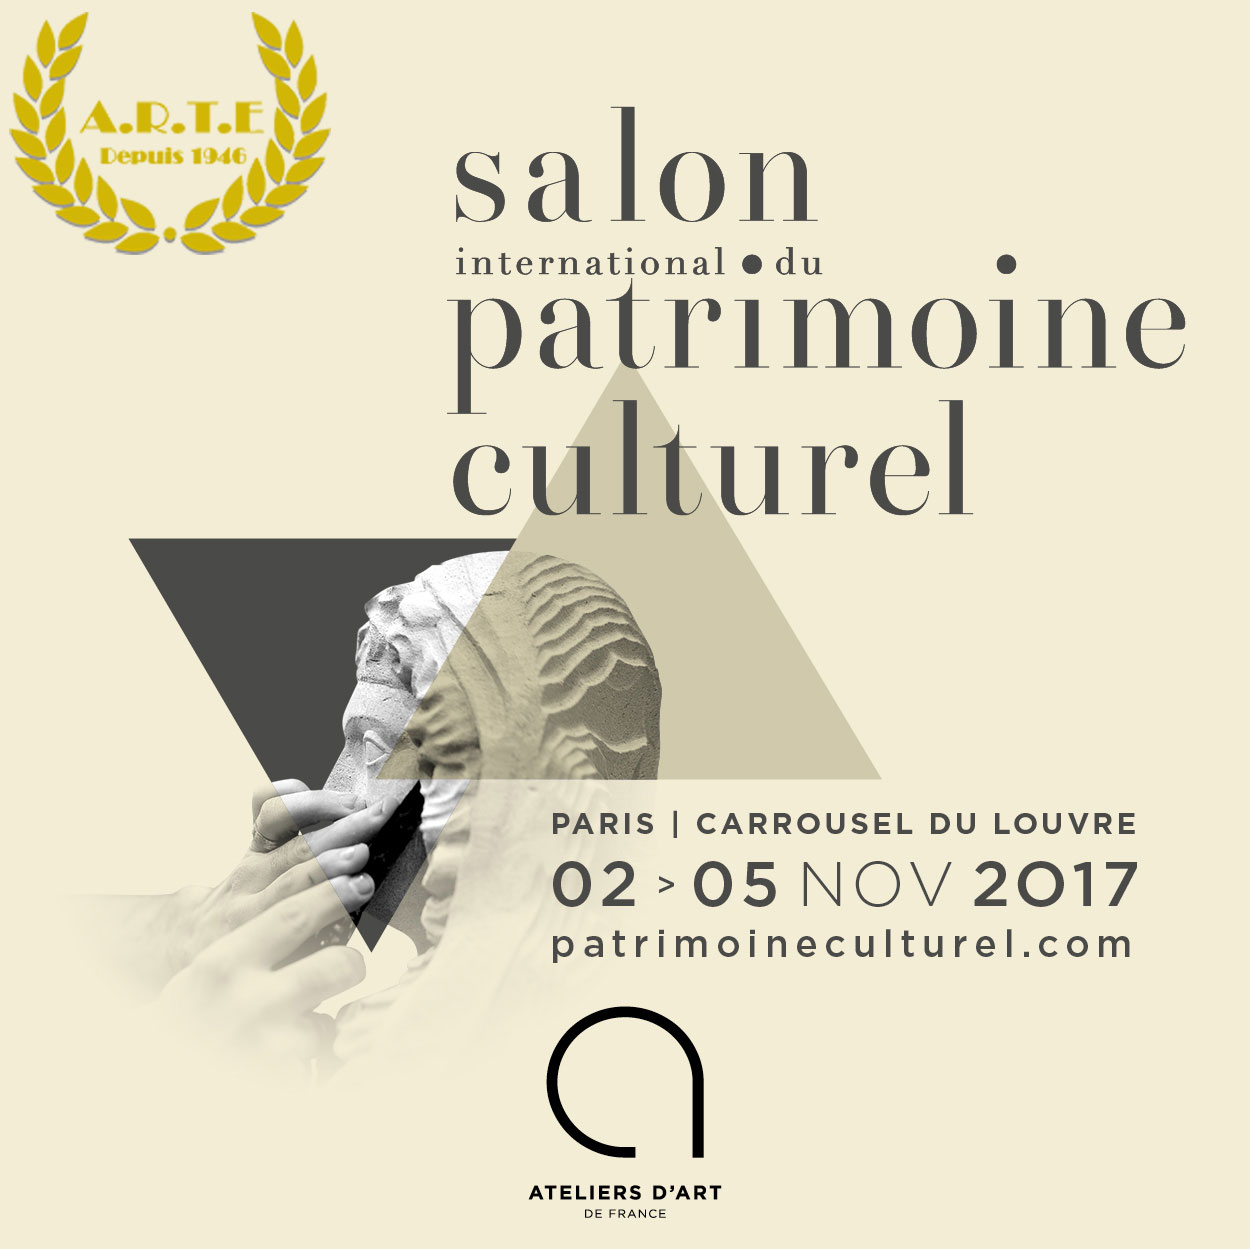 23 me salon du patrimoine culturel maison a r t emaison for Salon emmaus paris 2017